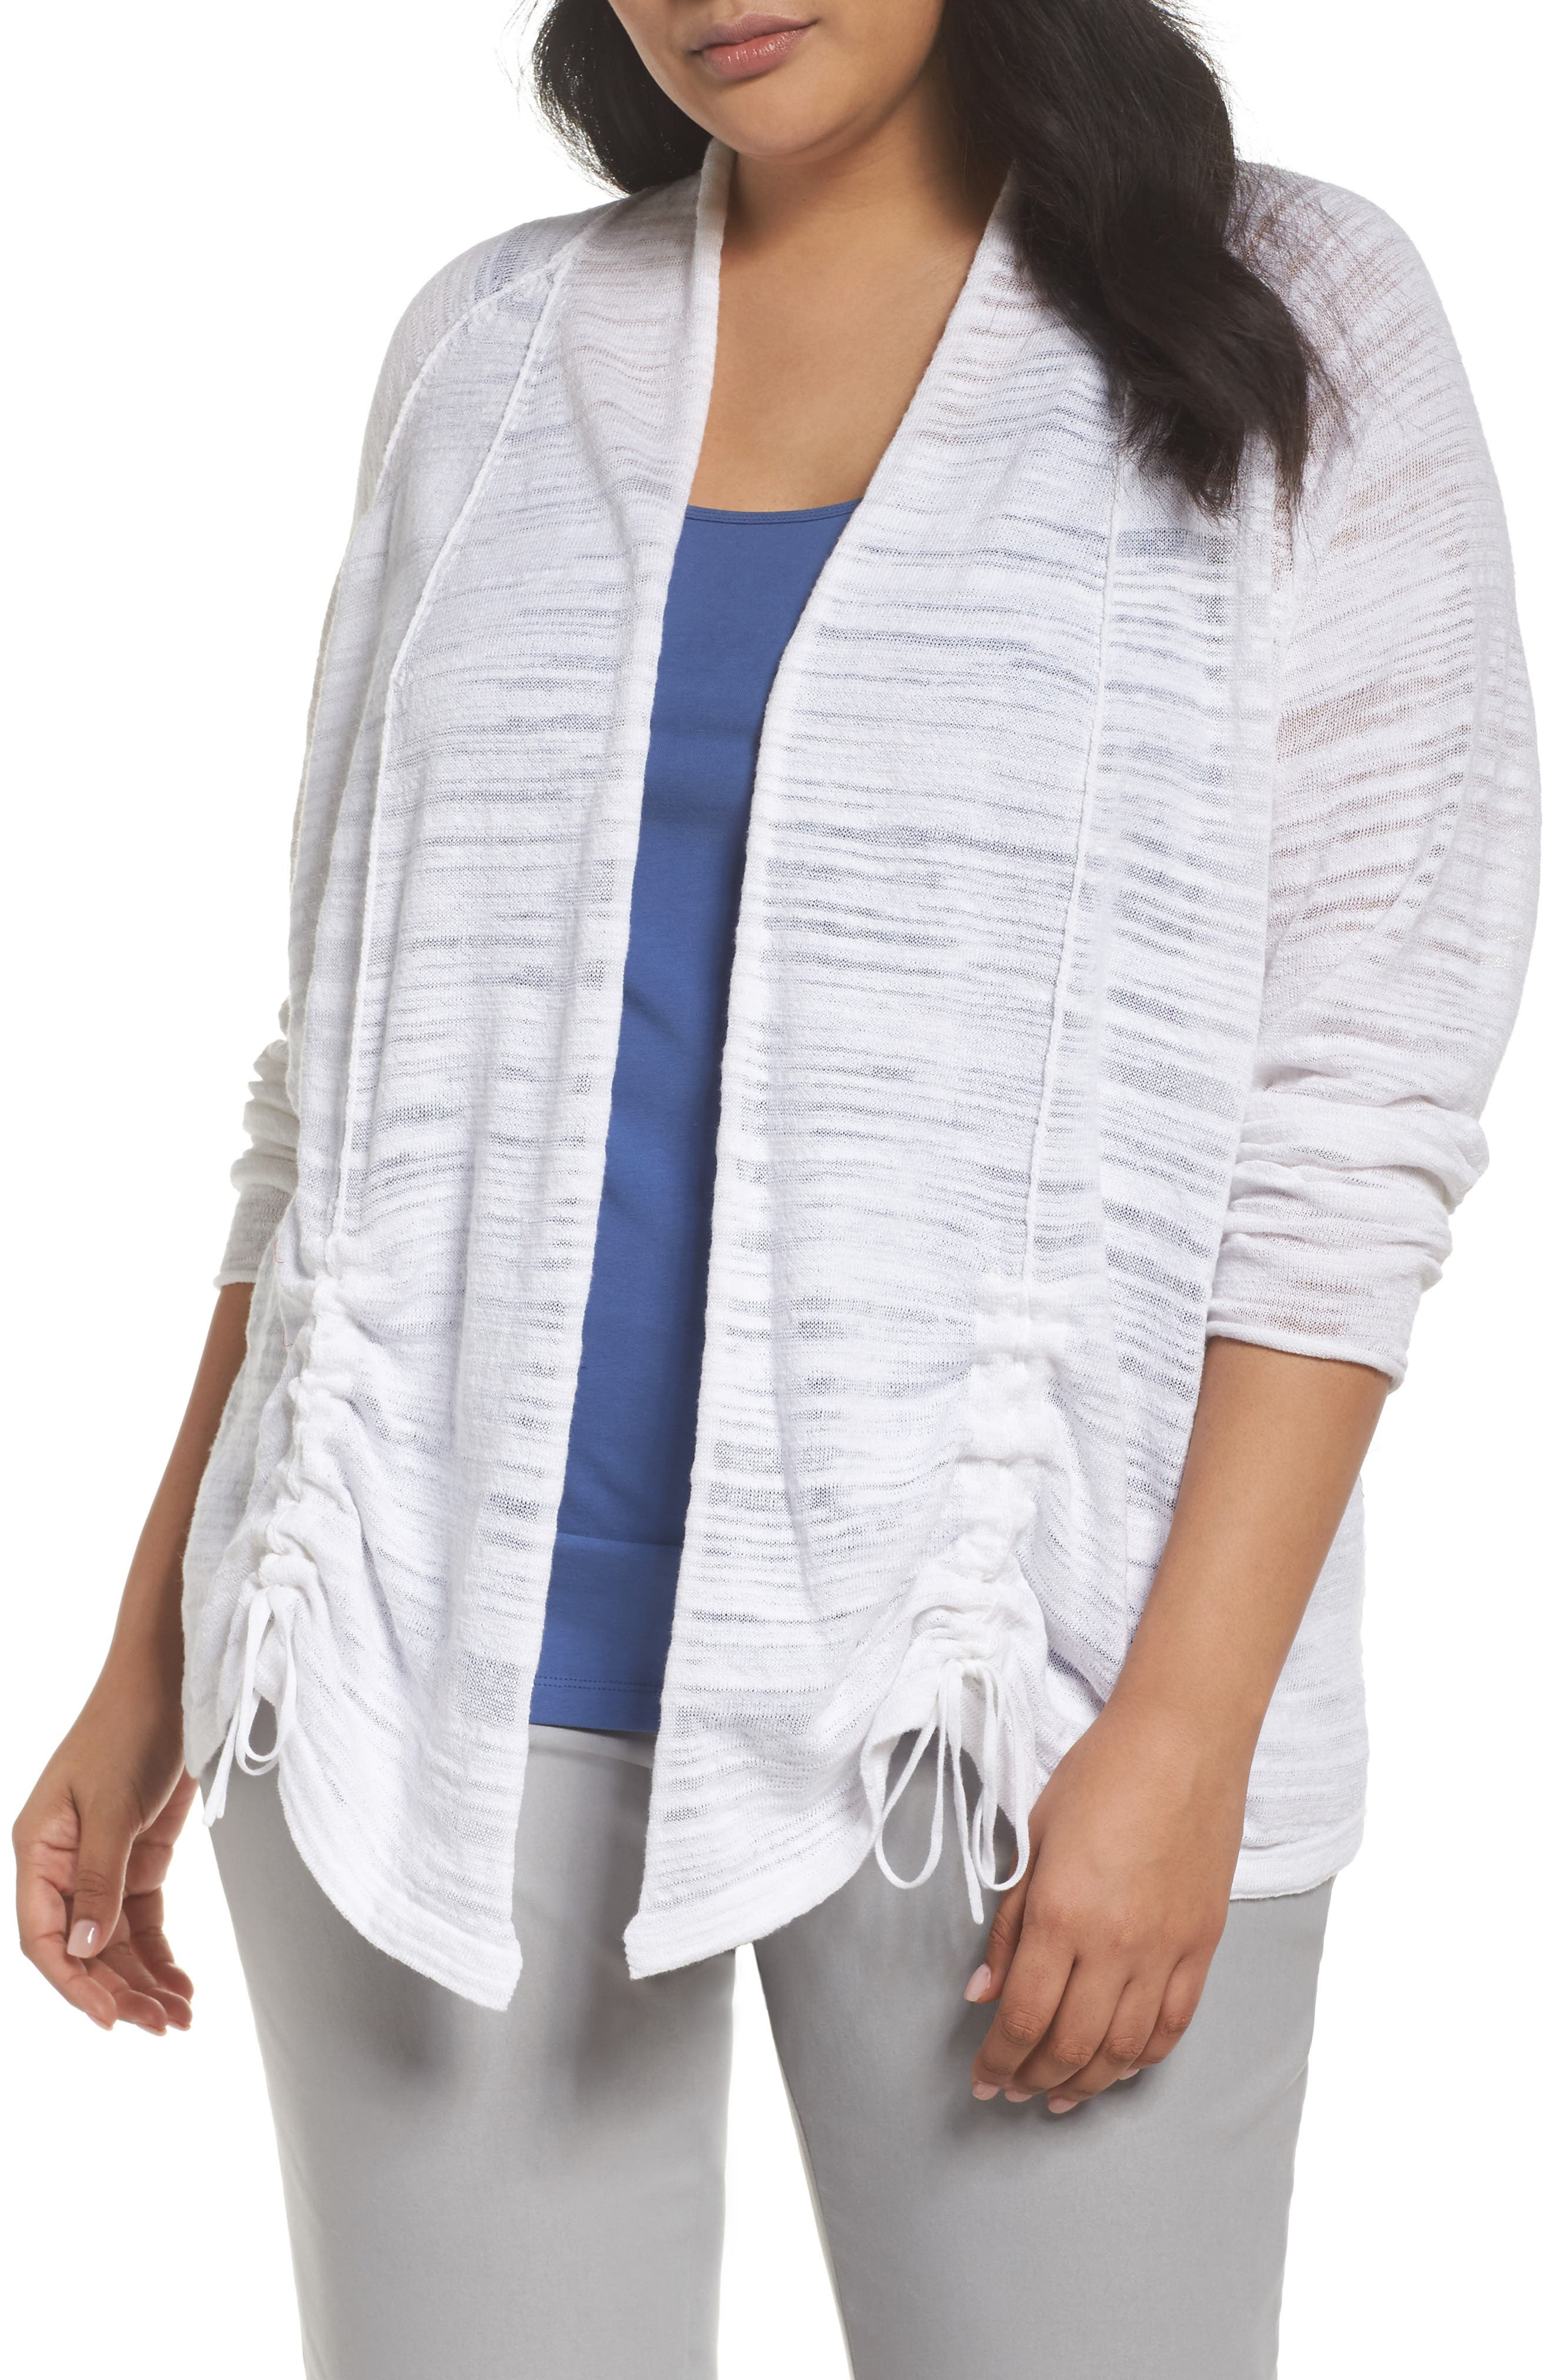 Subtle shading, seaming and tie-tipped ruching add delightful detail to an everyday cardigan that pairs perfectly with denim. Style Name: Nic+Zoe Sand Dune Ruched Sleeve Cardigan (Plus Size). Style Number: 5539413. Available in stores.